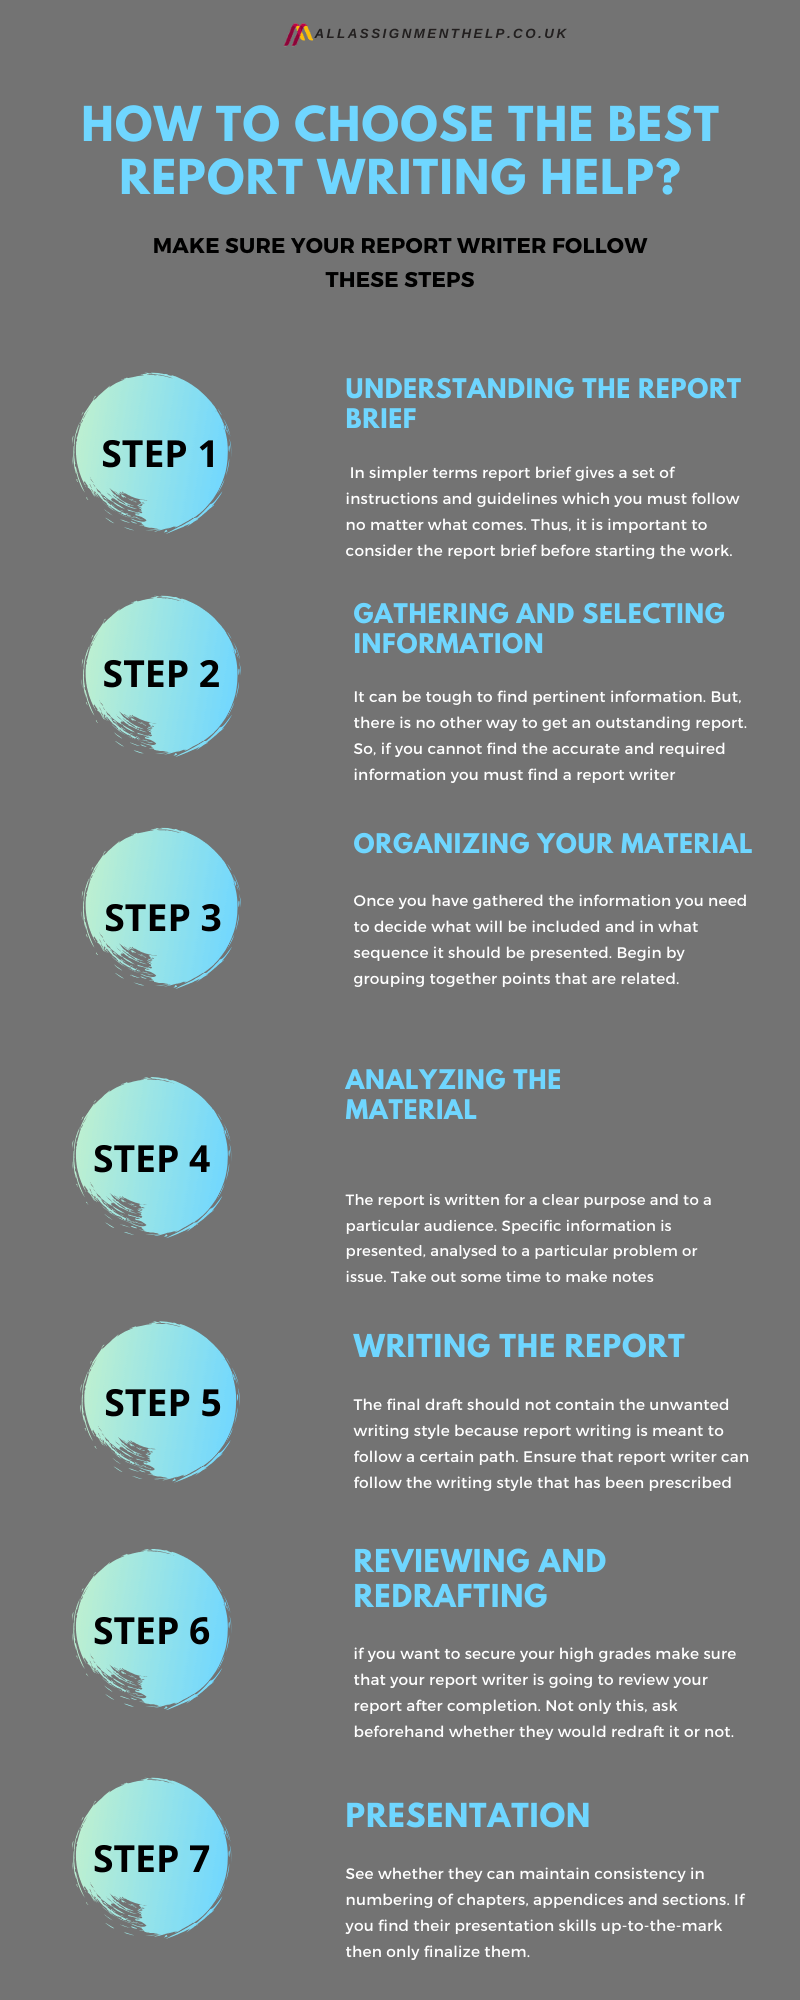 Report Writer – How to choose the best report writing help?